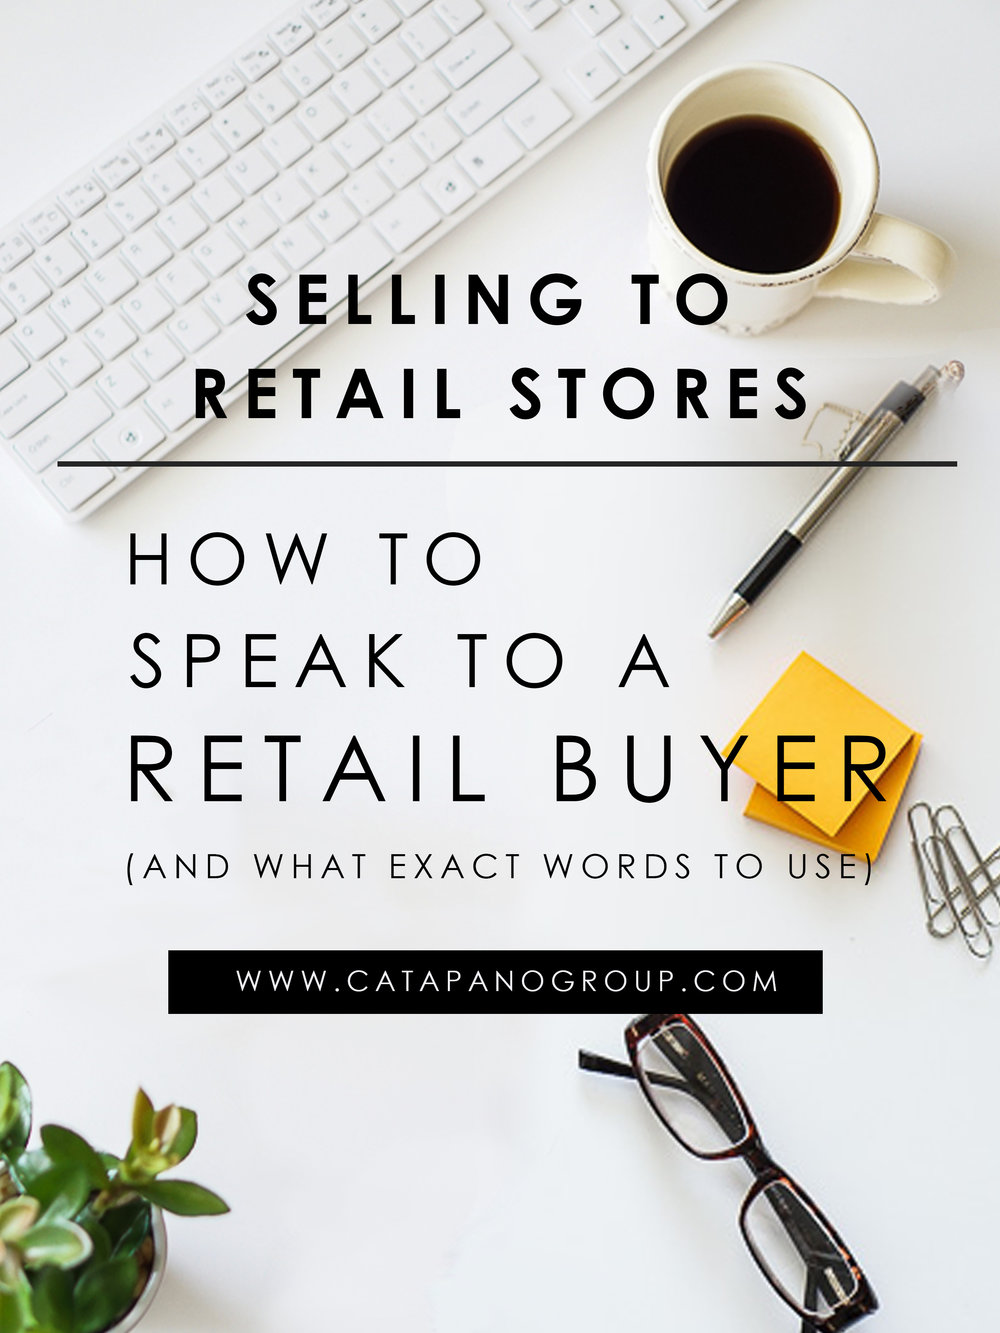 Selling to Retail Stores | How To Speak to A Retail Buyer